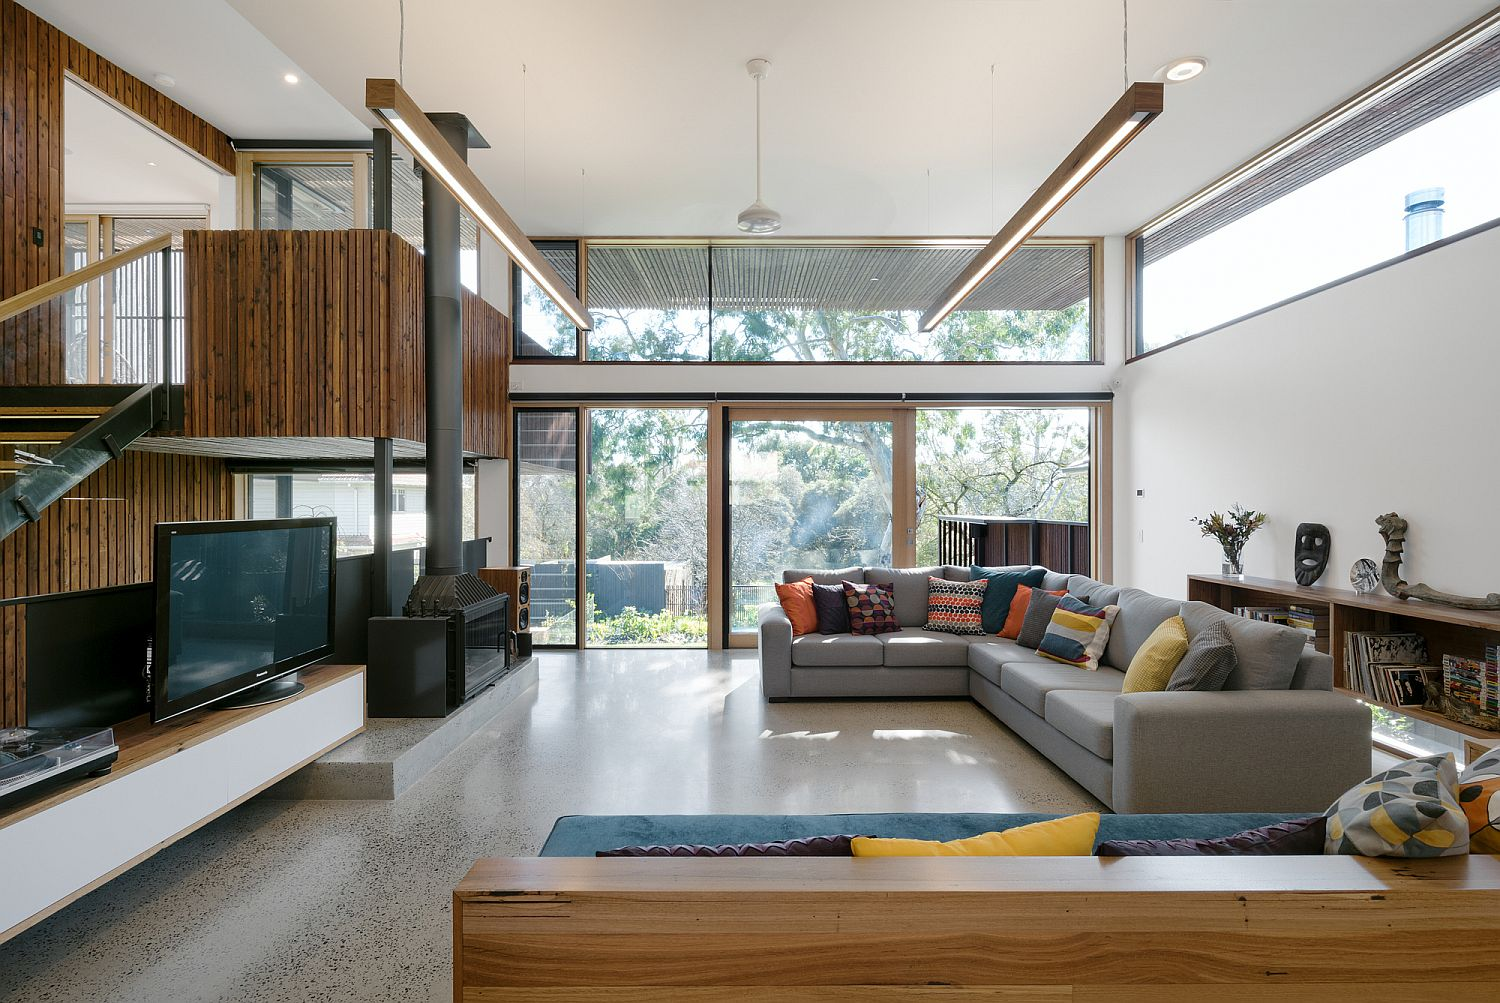 Light-filled split level interior of the Aussie home